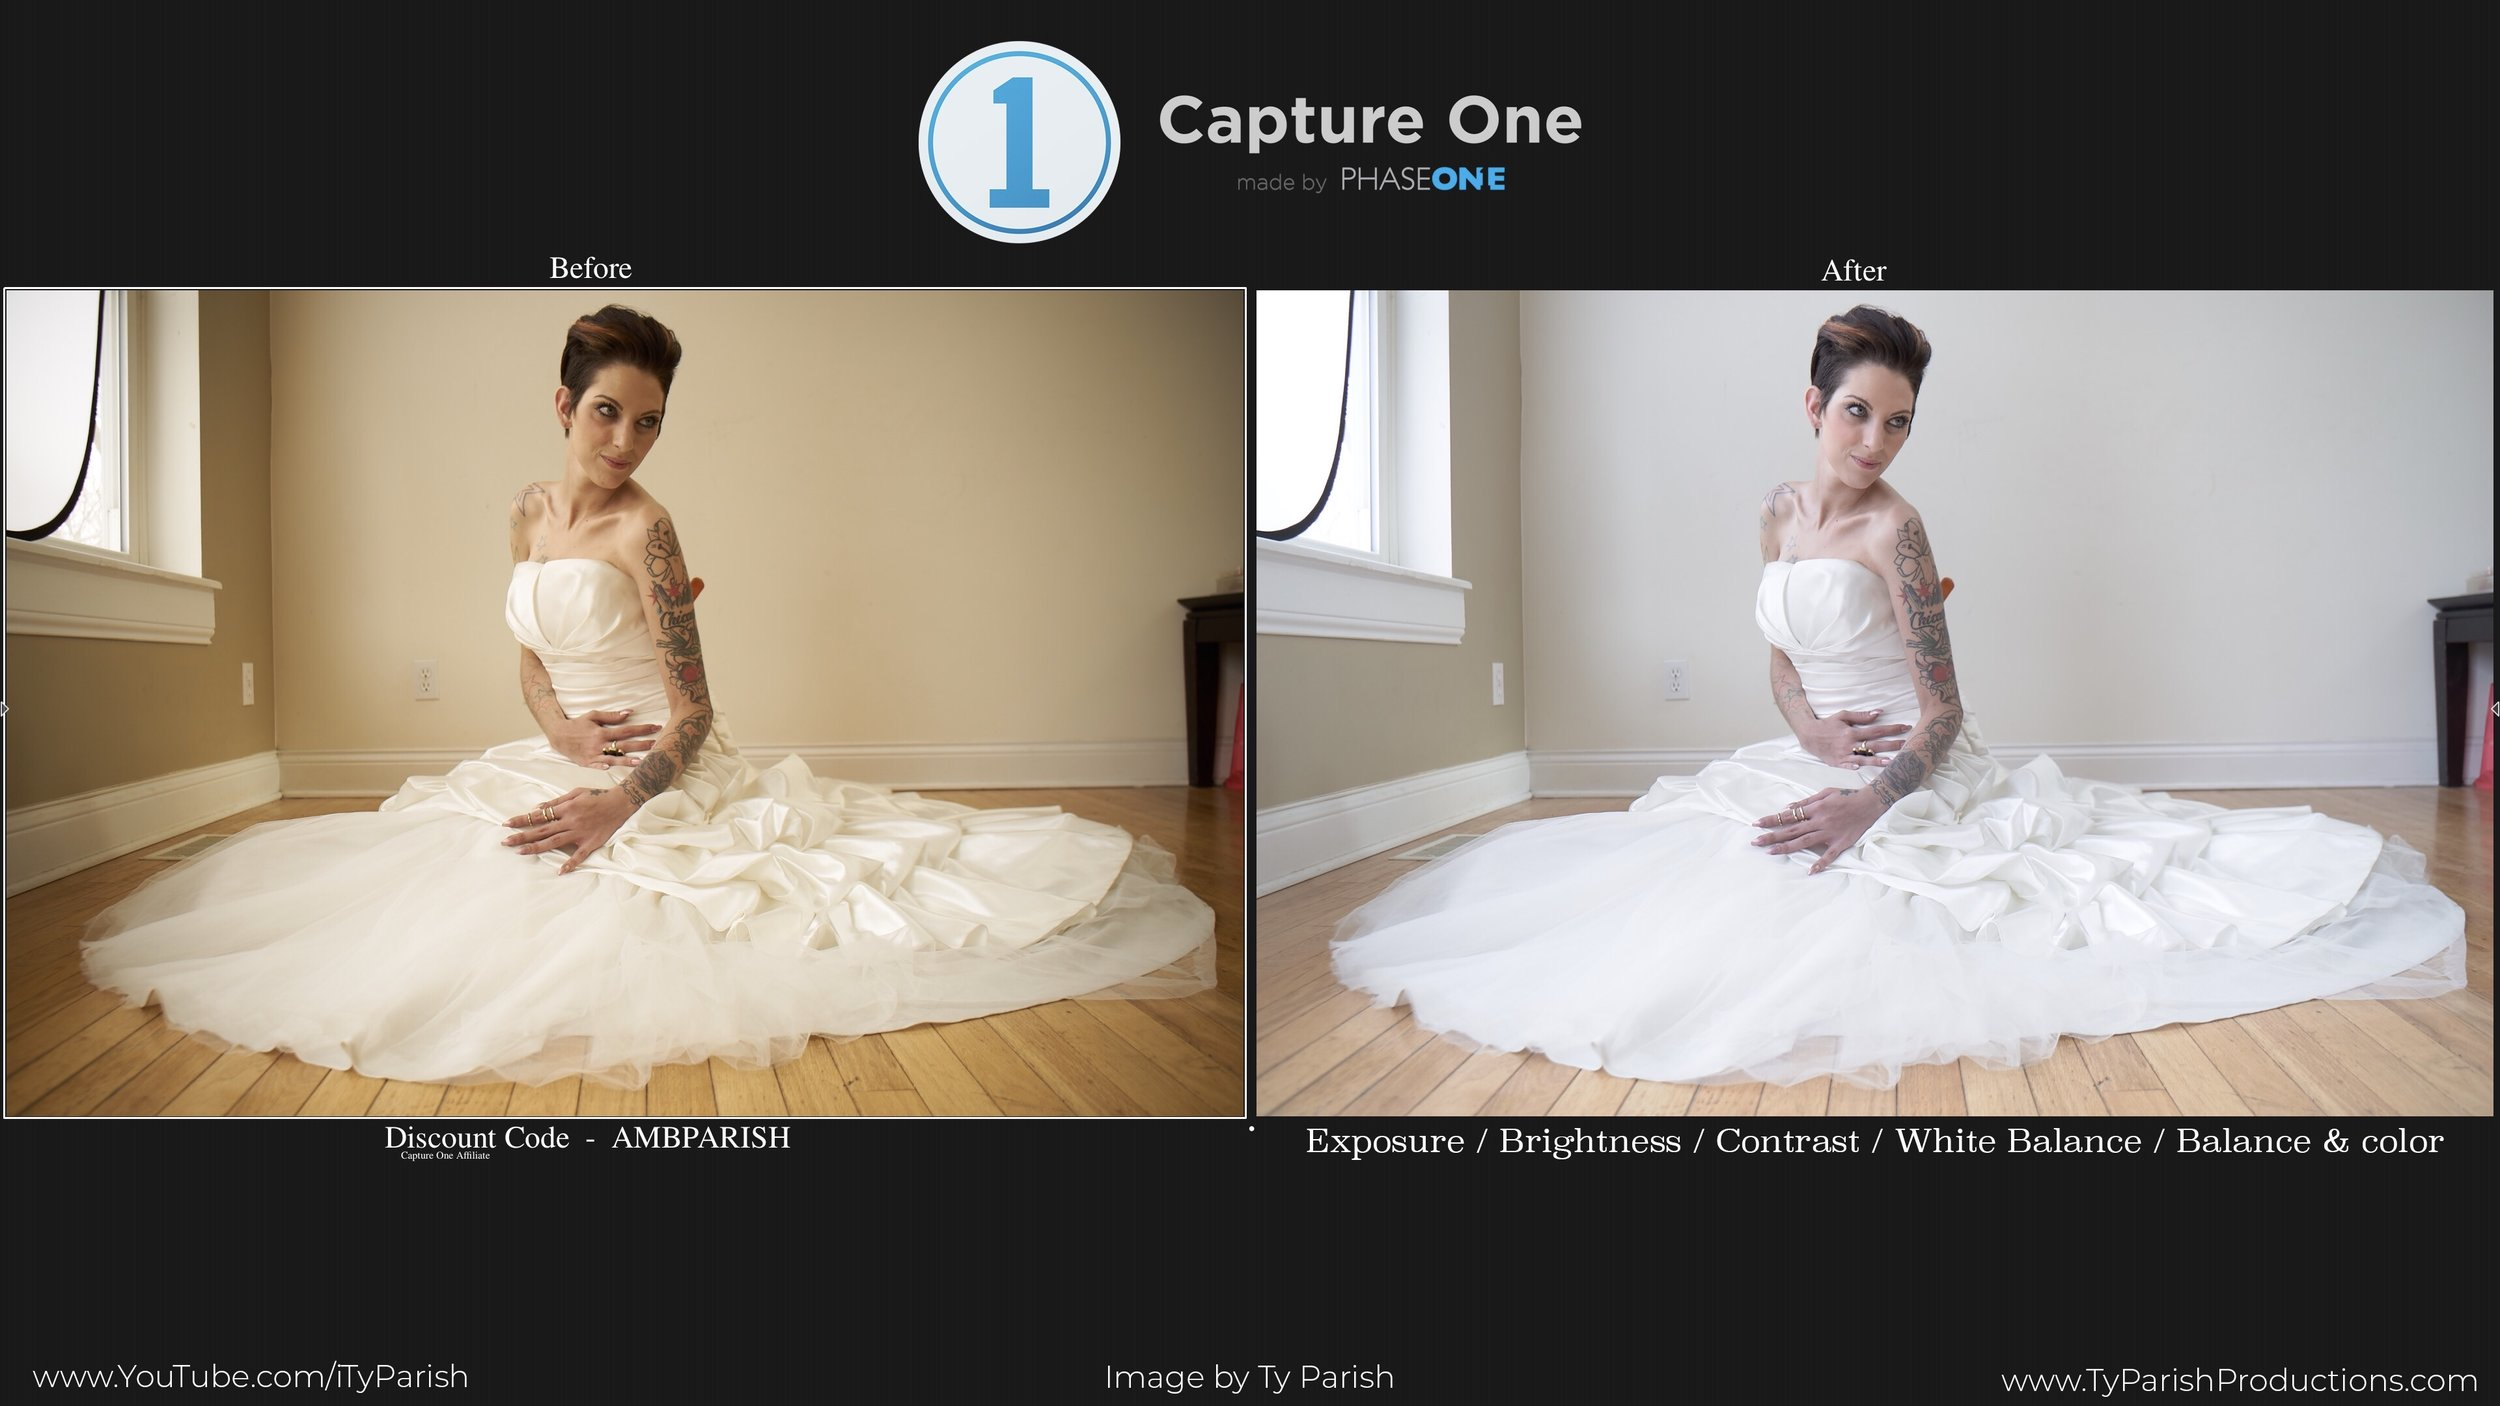 Capture One Pro 11 Model Before & After.jpeg